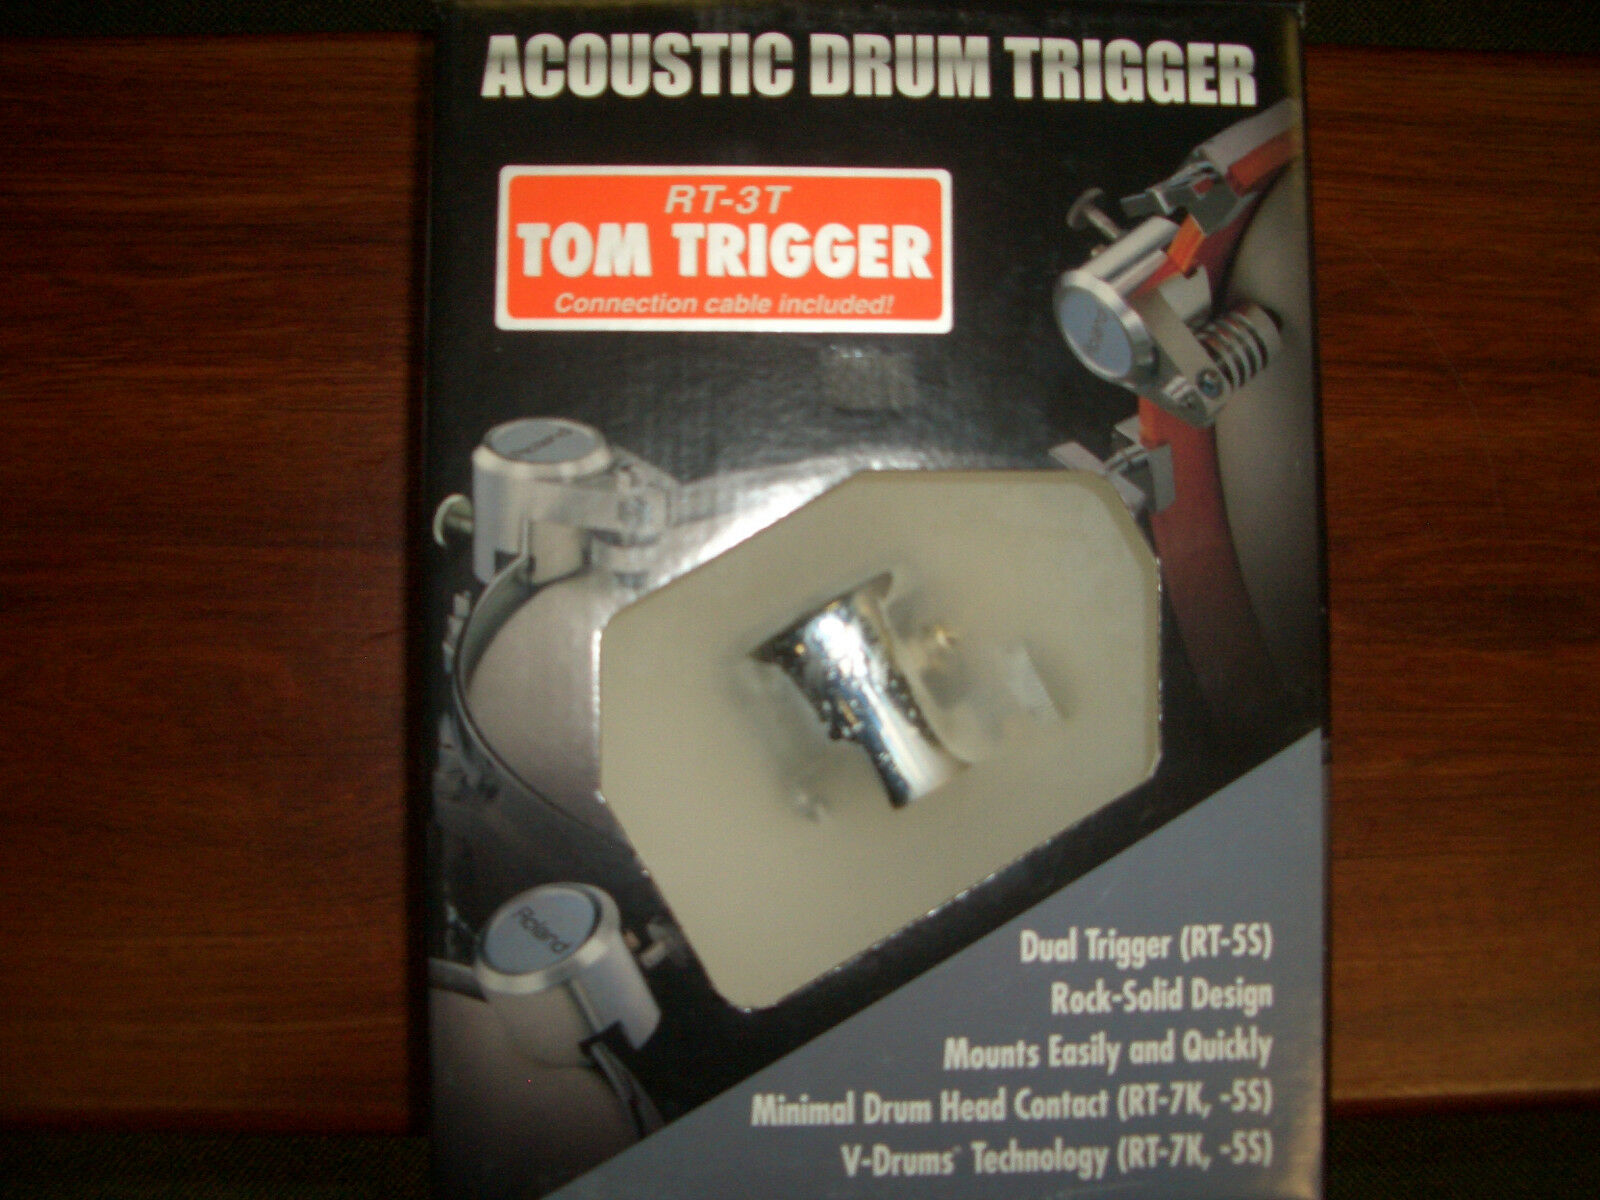 Sito ufficiale Roland rt-3t Tom Tom Trigger       NOS NEW OLD STOCK   assembled in Usa   Ovp  consegna lampo